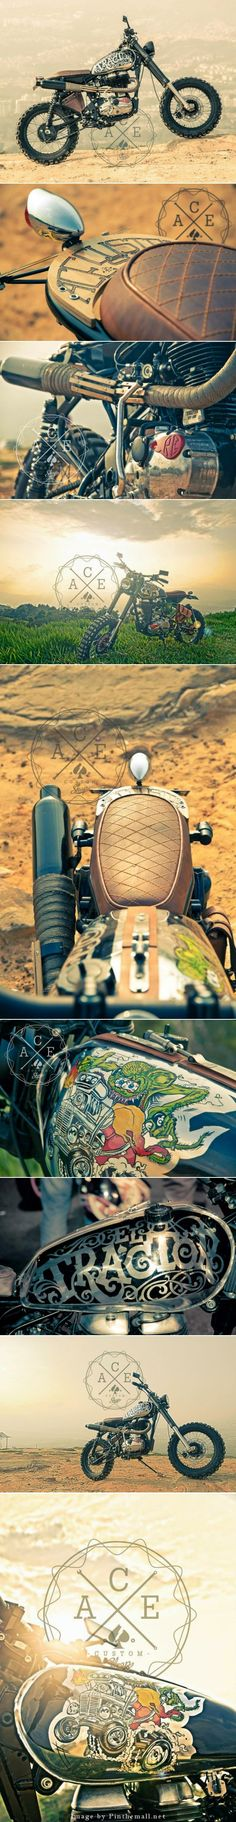 For Motorcycle fans: El tractor Click to read more about